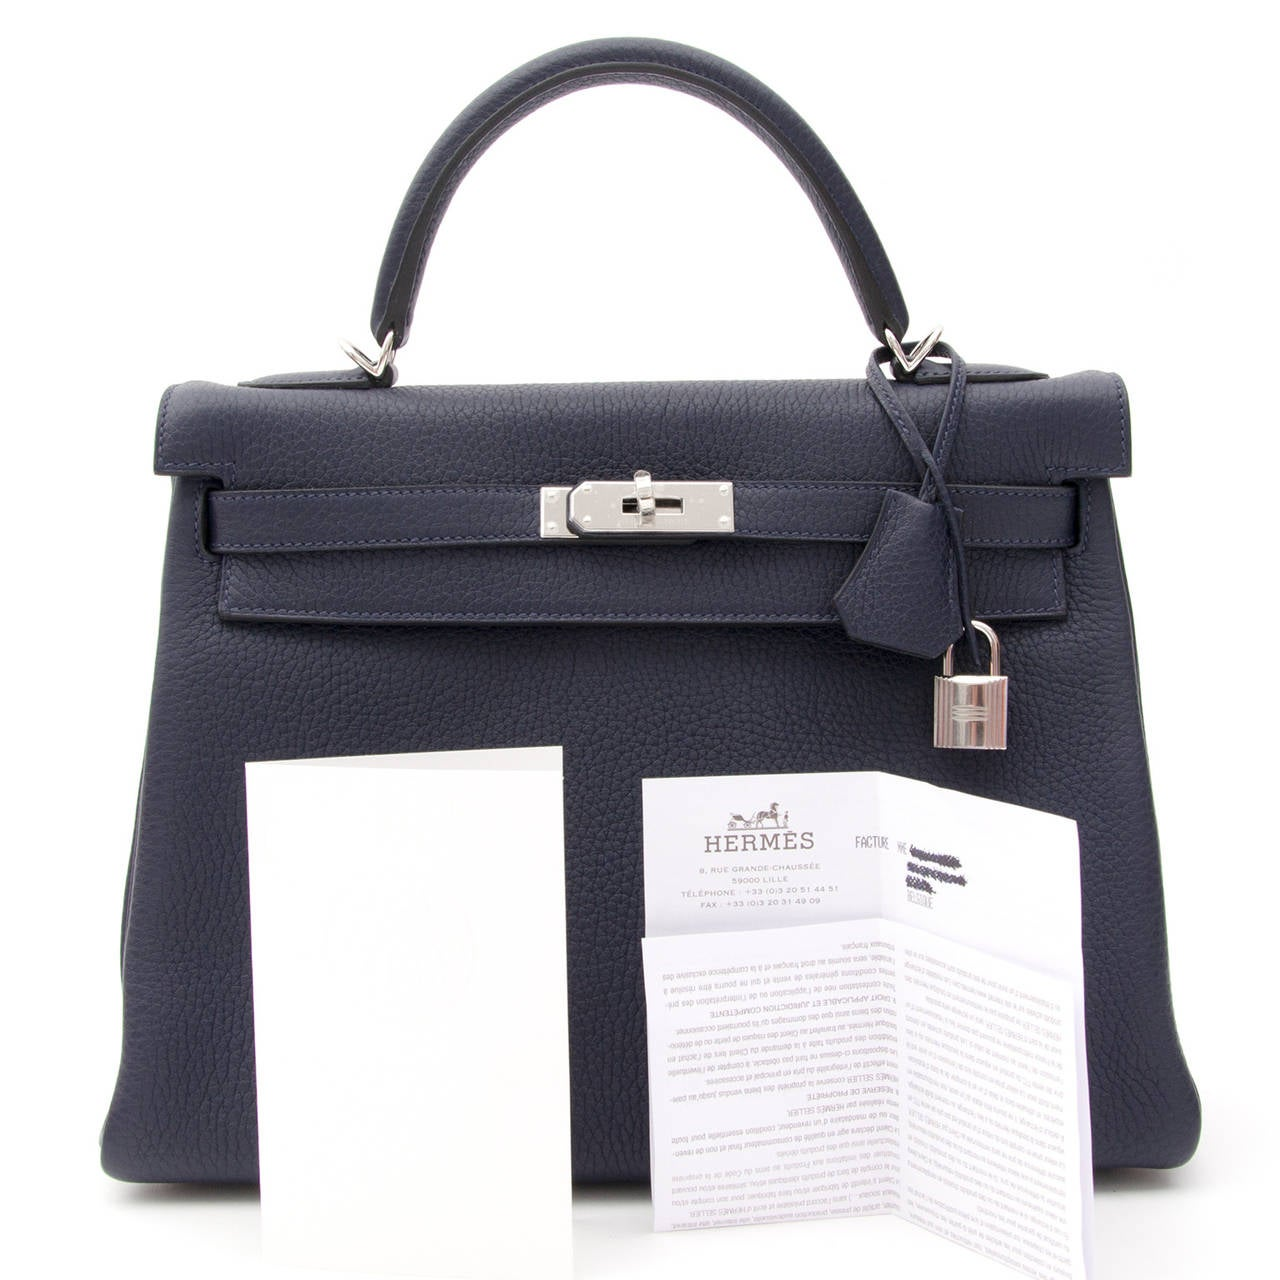 BRAND NEW Herm��s Kelly Bag Taurillon Clemence 32 Blue Nuit For ...